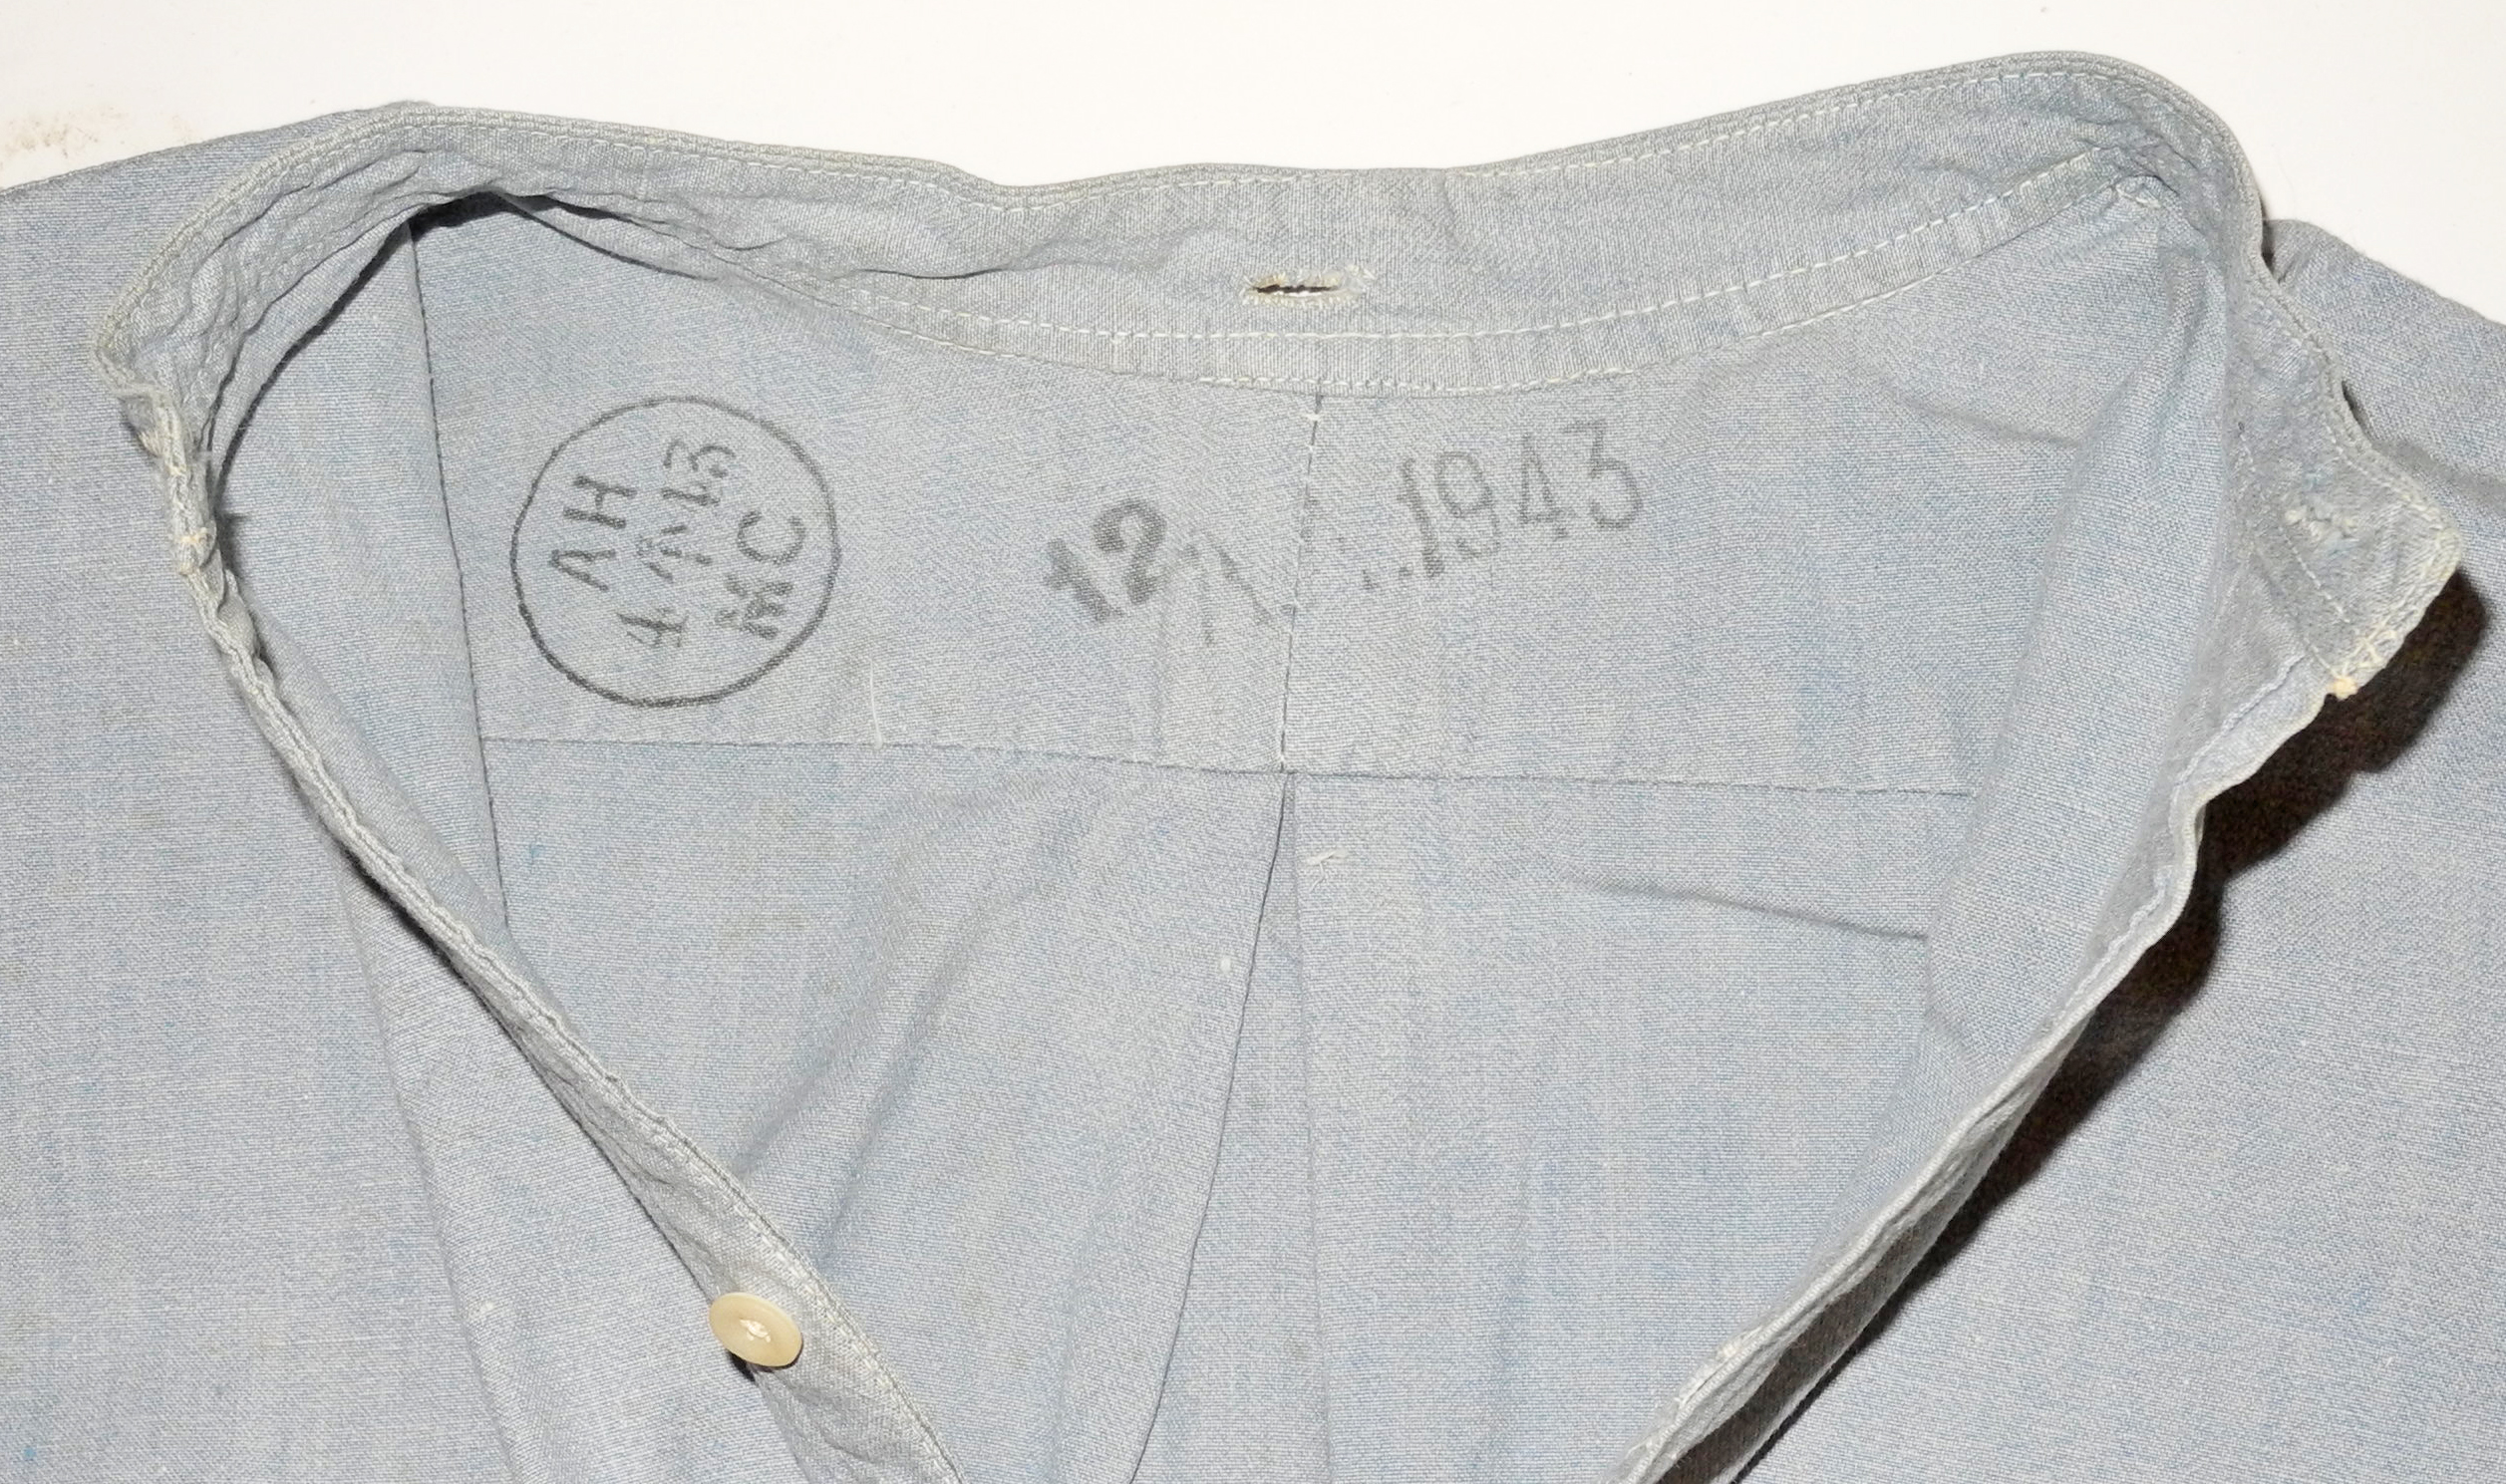 RAF officer's shirt with detached collar 1943 dated